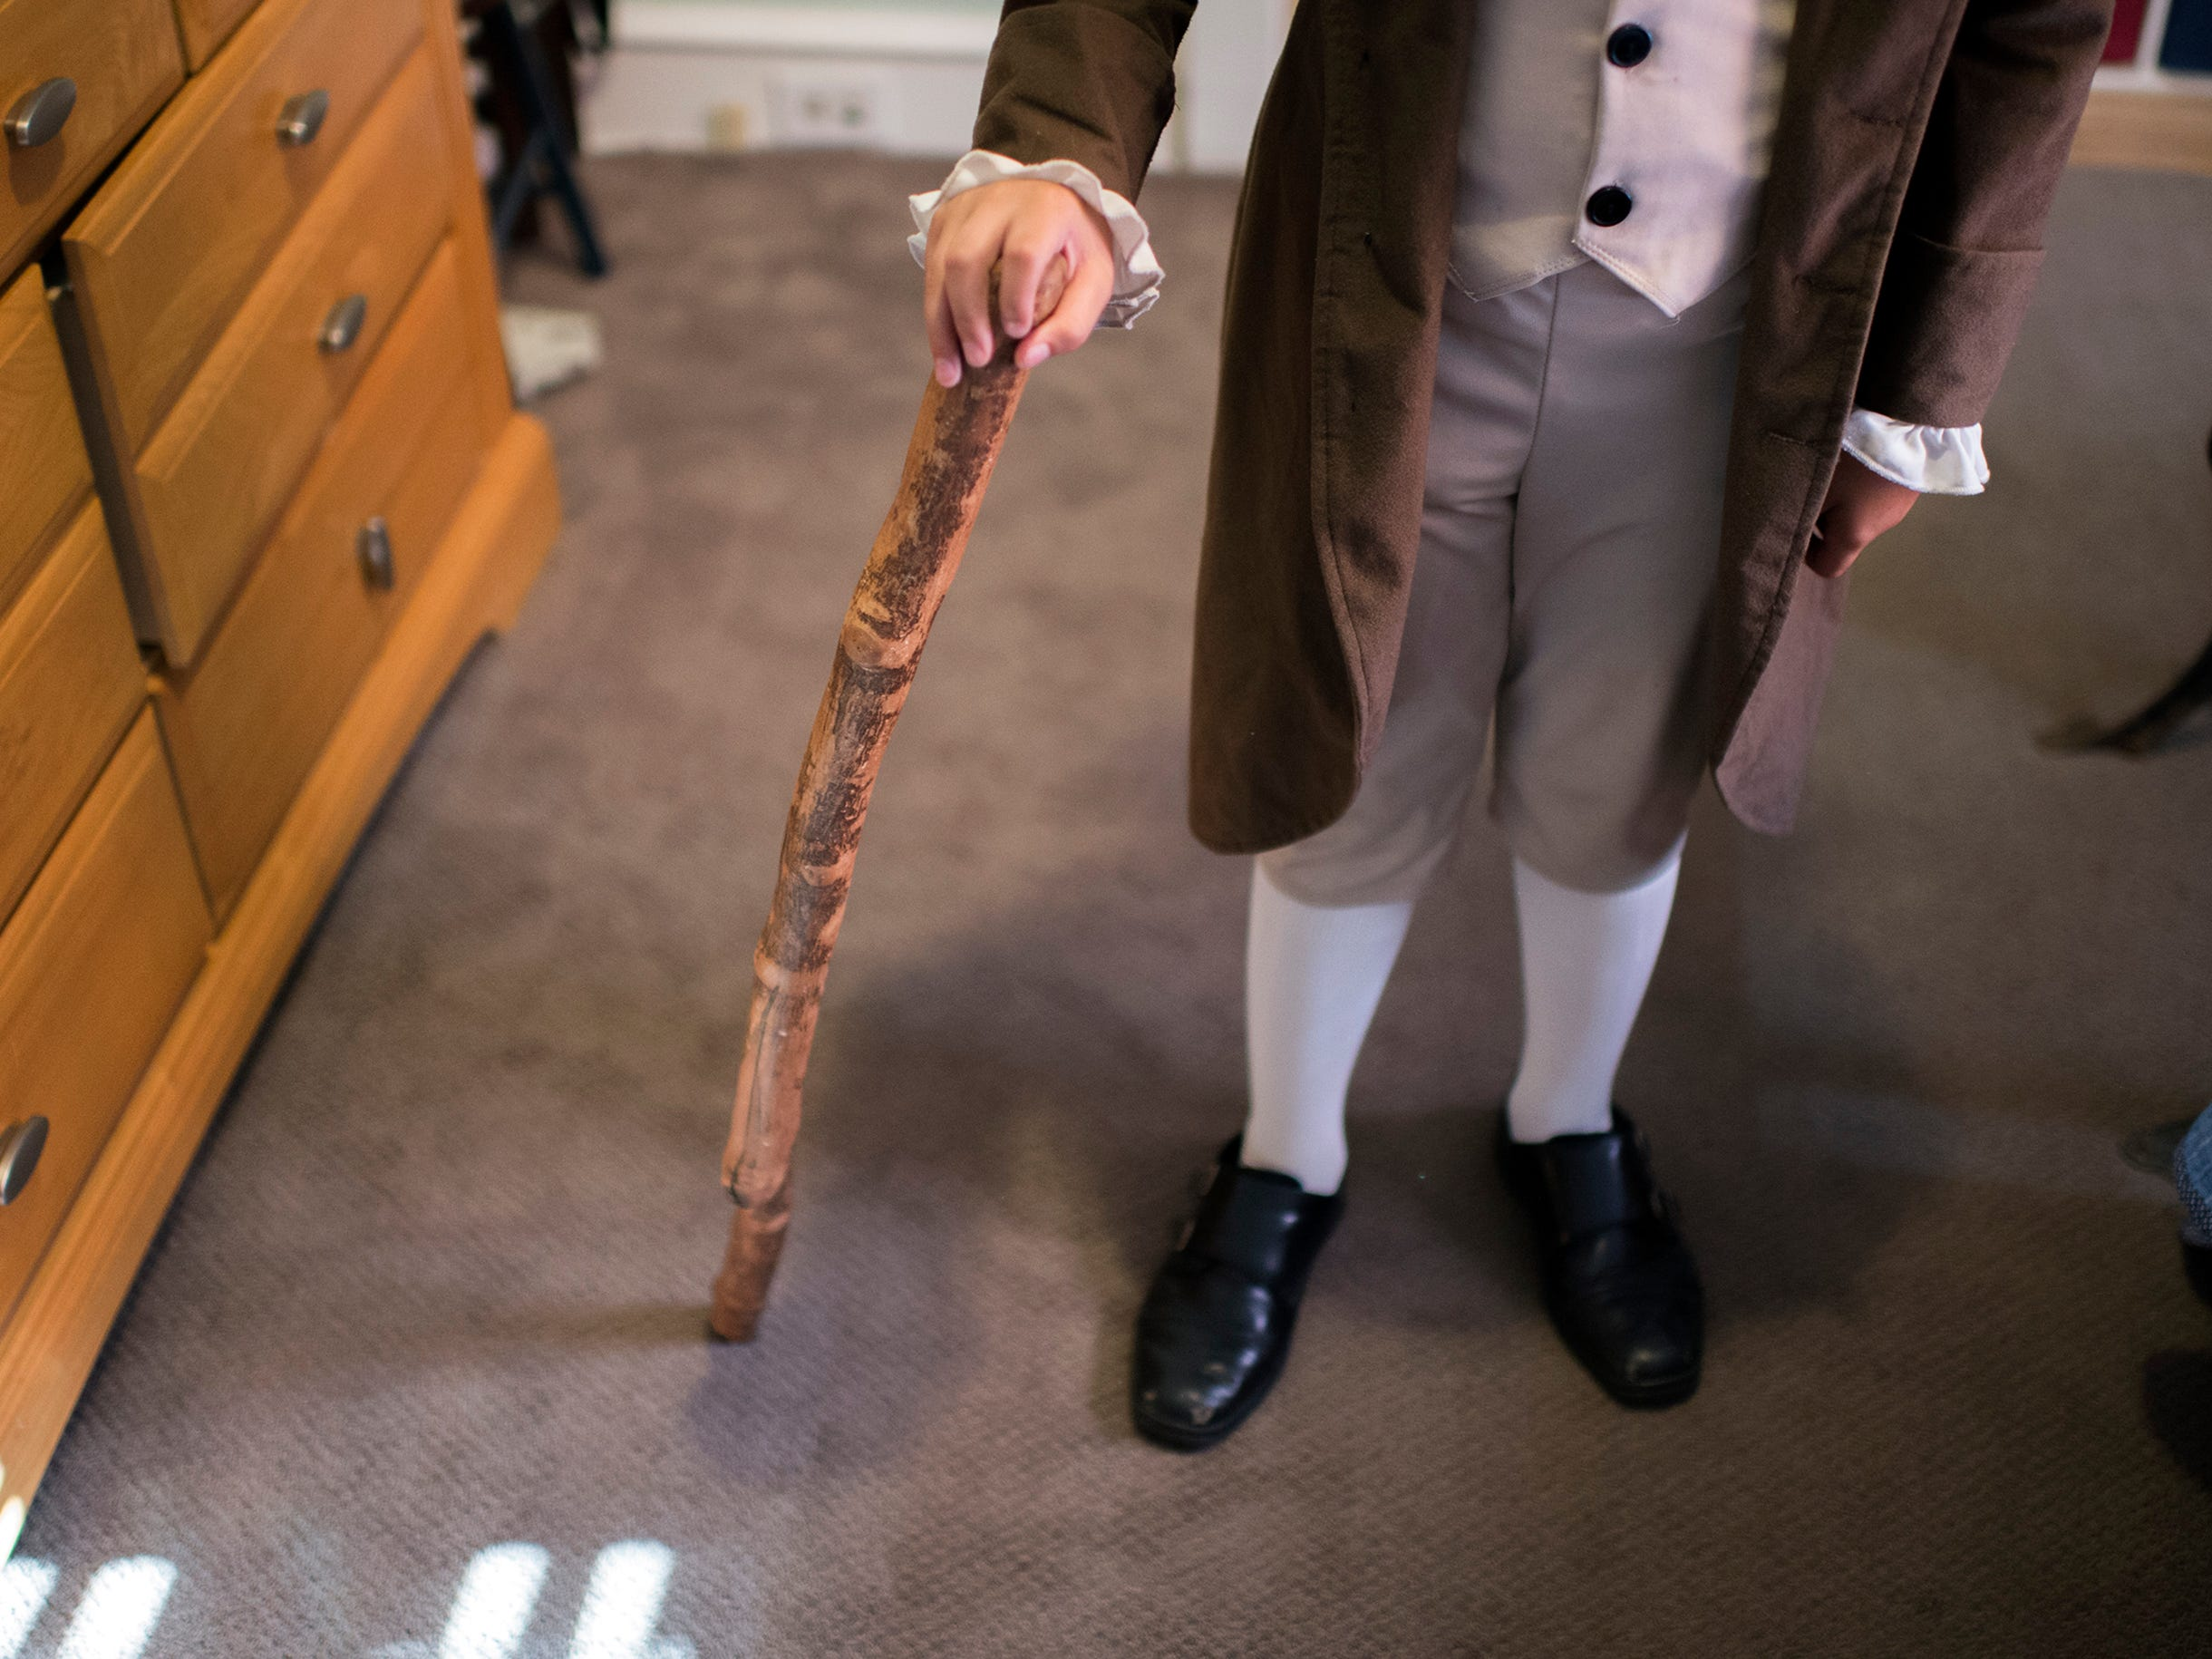 Joseph Gentile, 9, shows off his walking stick at home Thursday, Aug. 9, 2018 in Haddon Heights, N.J.